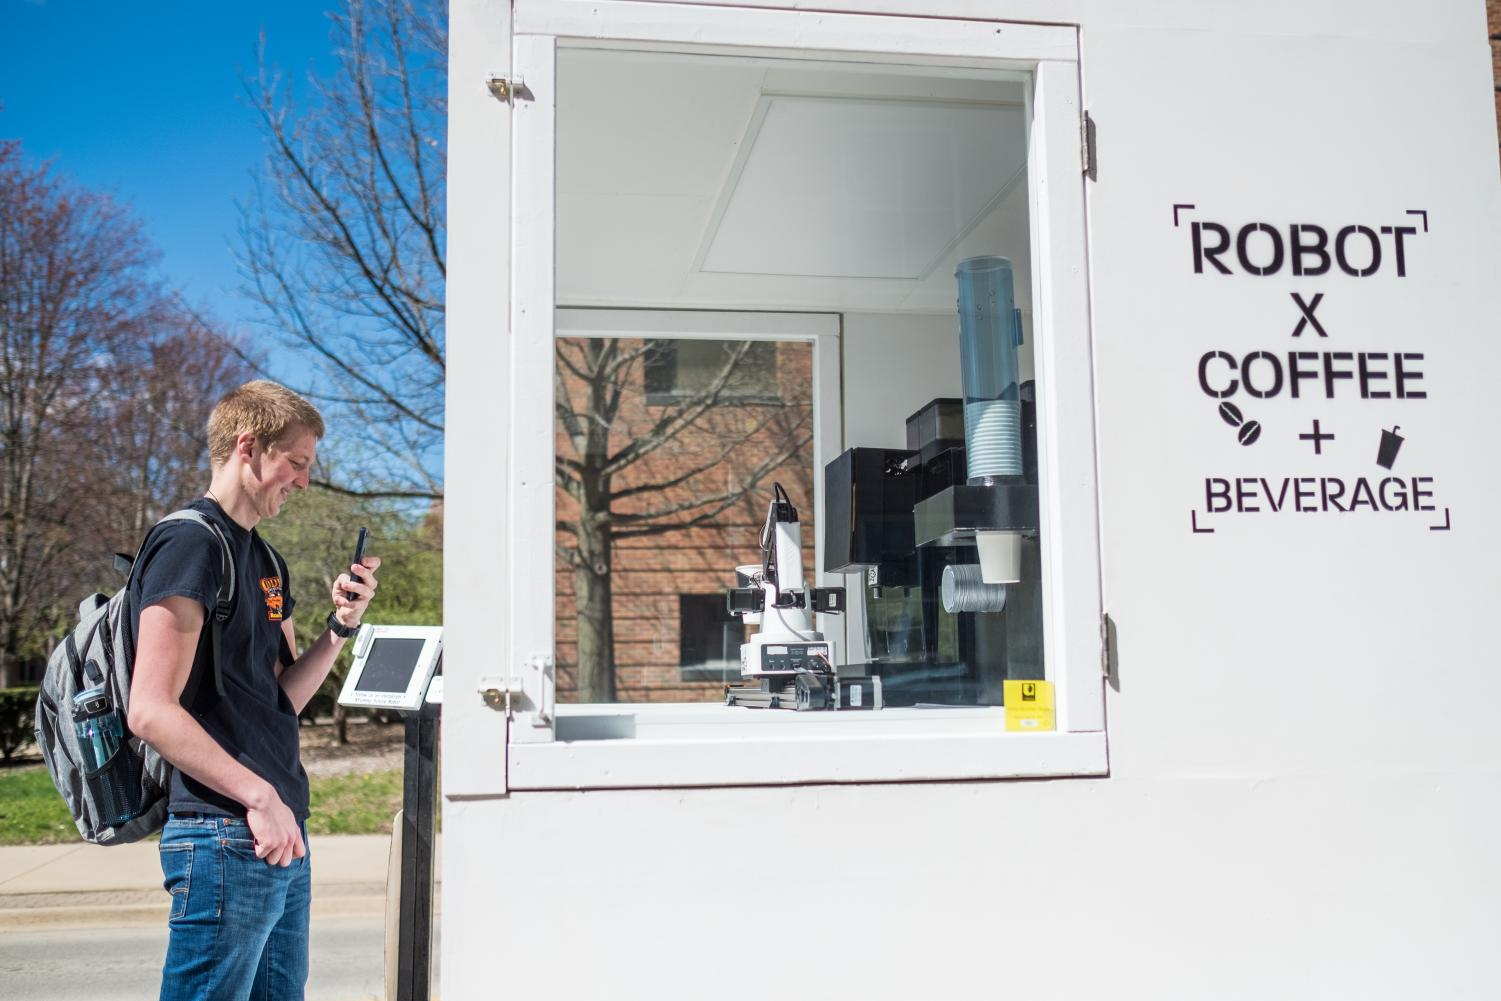 Cody Bainbridge, sophomore in Engineering, buys coffee from the Robot x Coffee Machine outside of Grainger on Apr. 14. The robot serves between 100 to 200 cups a day.